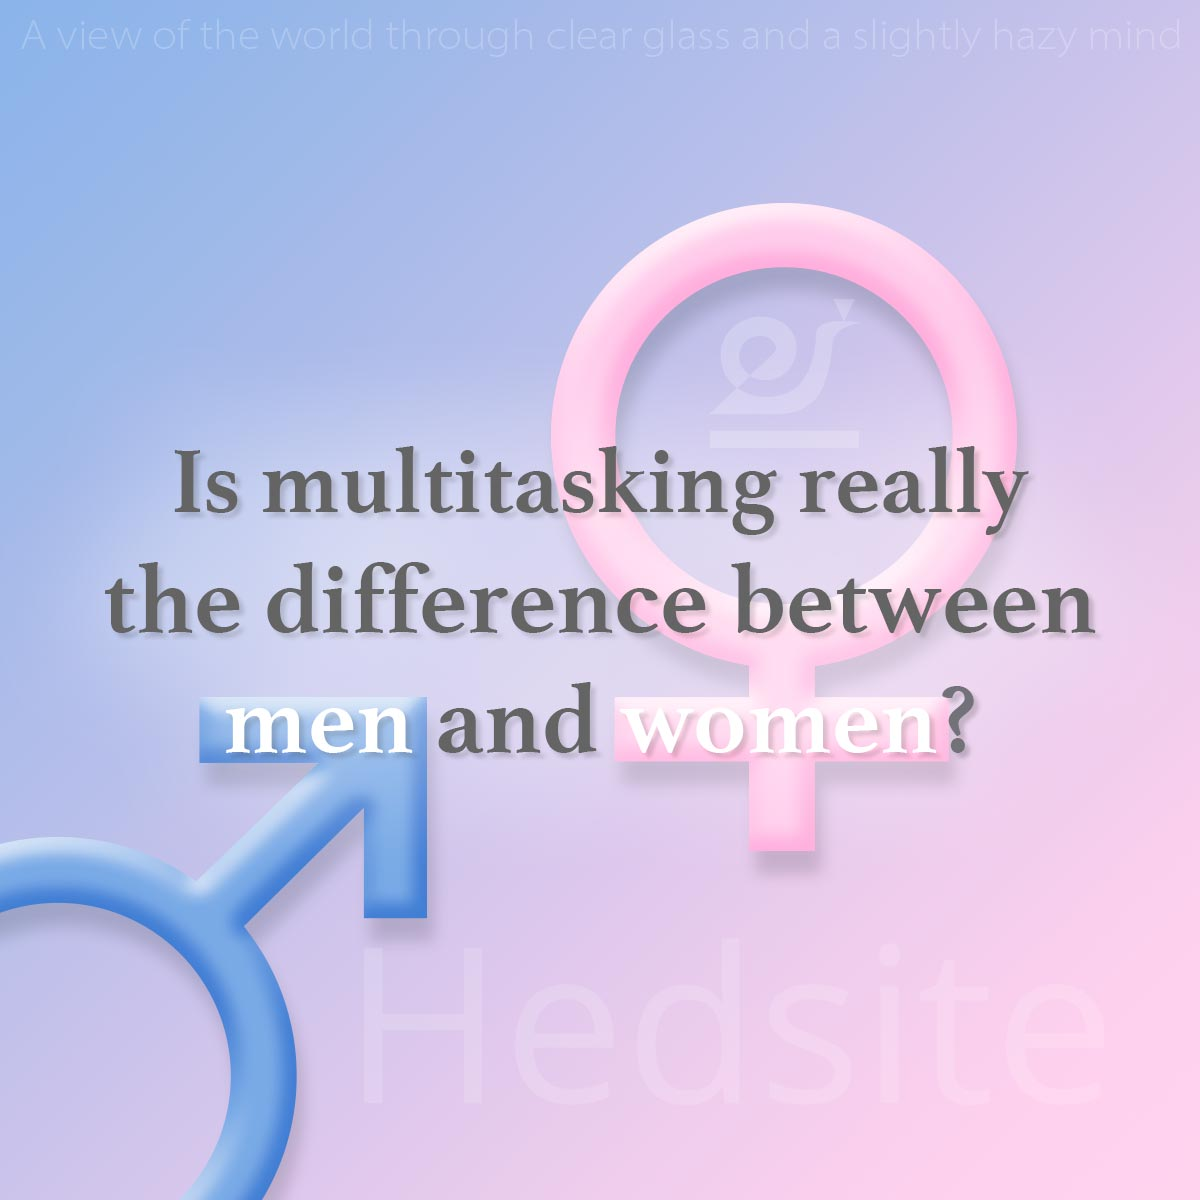 Is multitasking really the difference between men and women?